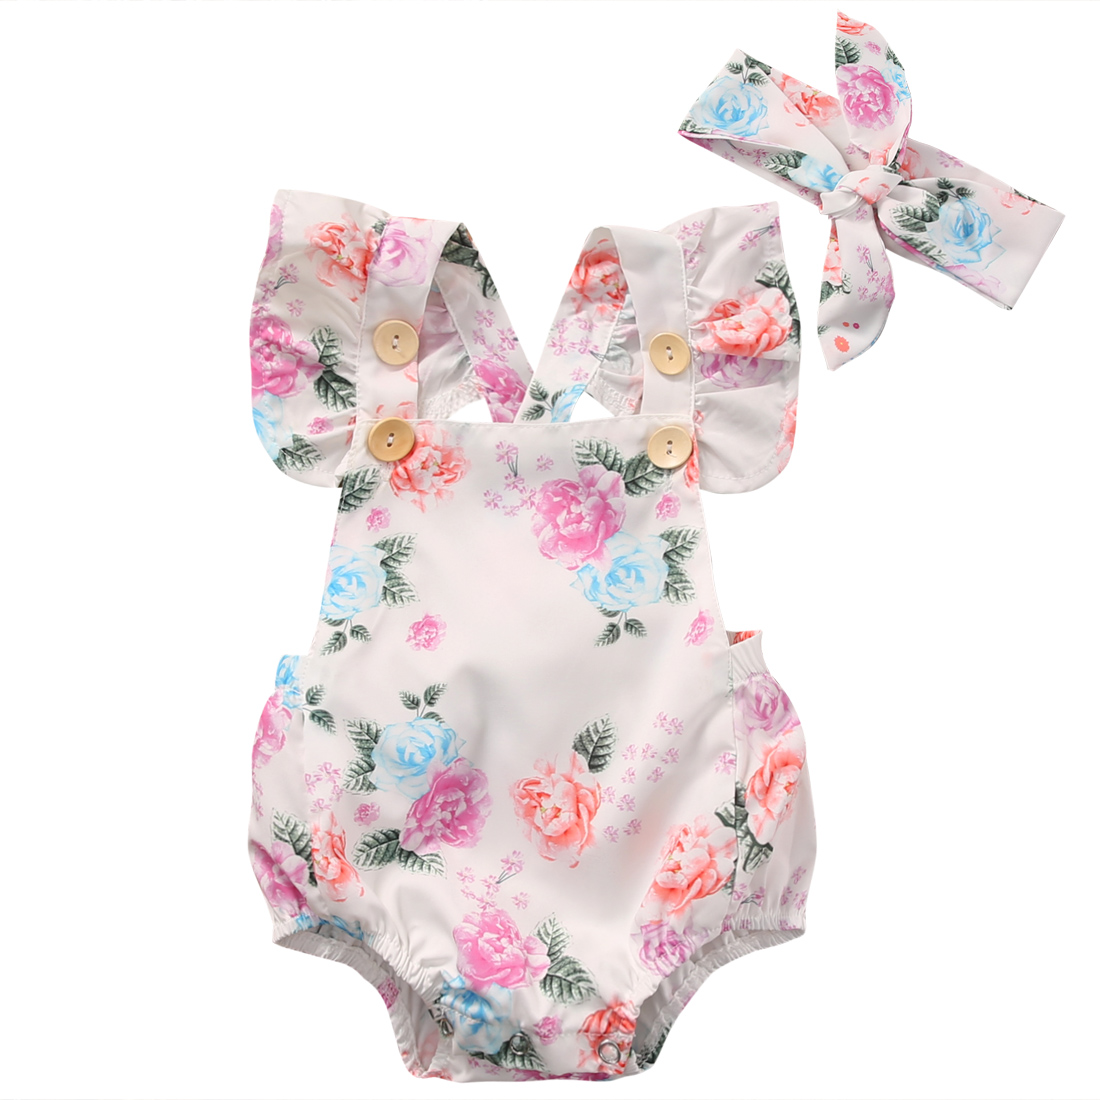 2020 Cute 2PCS Baby clothes Romper + Headband Infant Baby Girls Summer sleeveless Romper Sunsuit Outfits Set